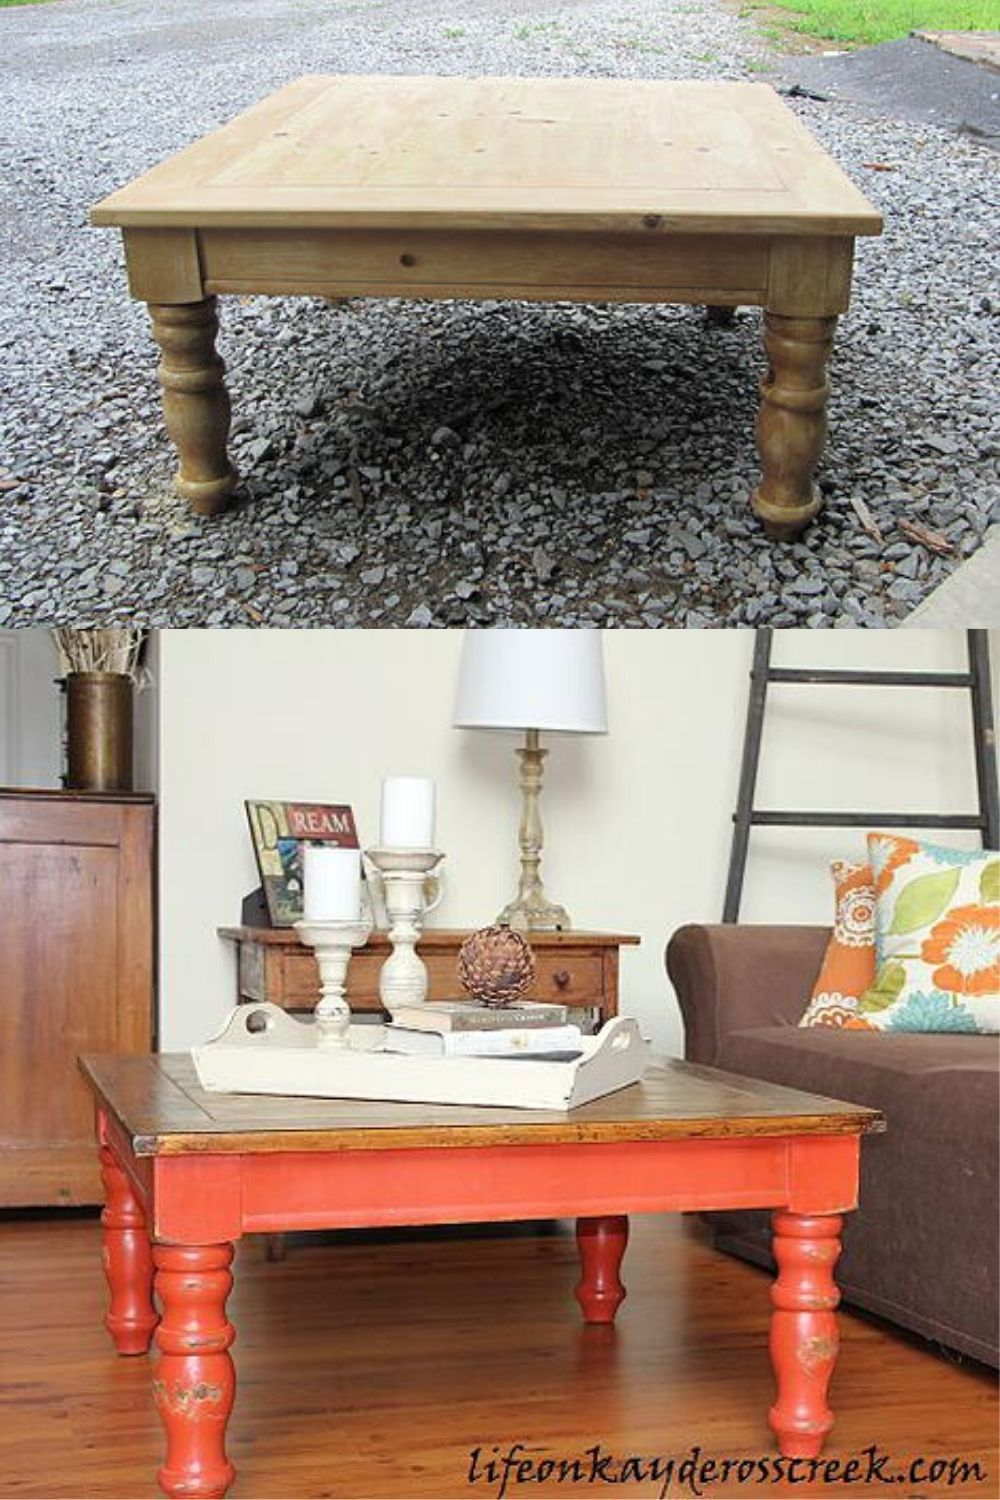 Amazing Coffee Table Upcycles Coffee Table Coffee Table Upcycle Table [ 1500 x 1000 Pixel ]